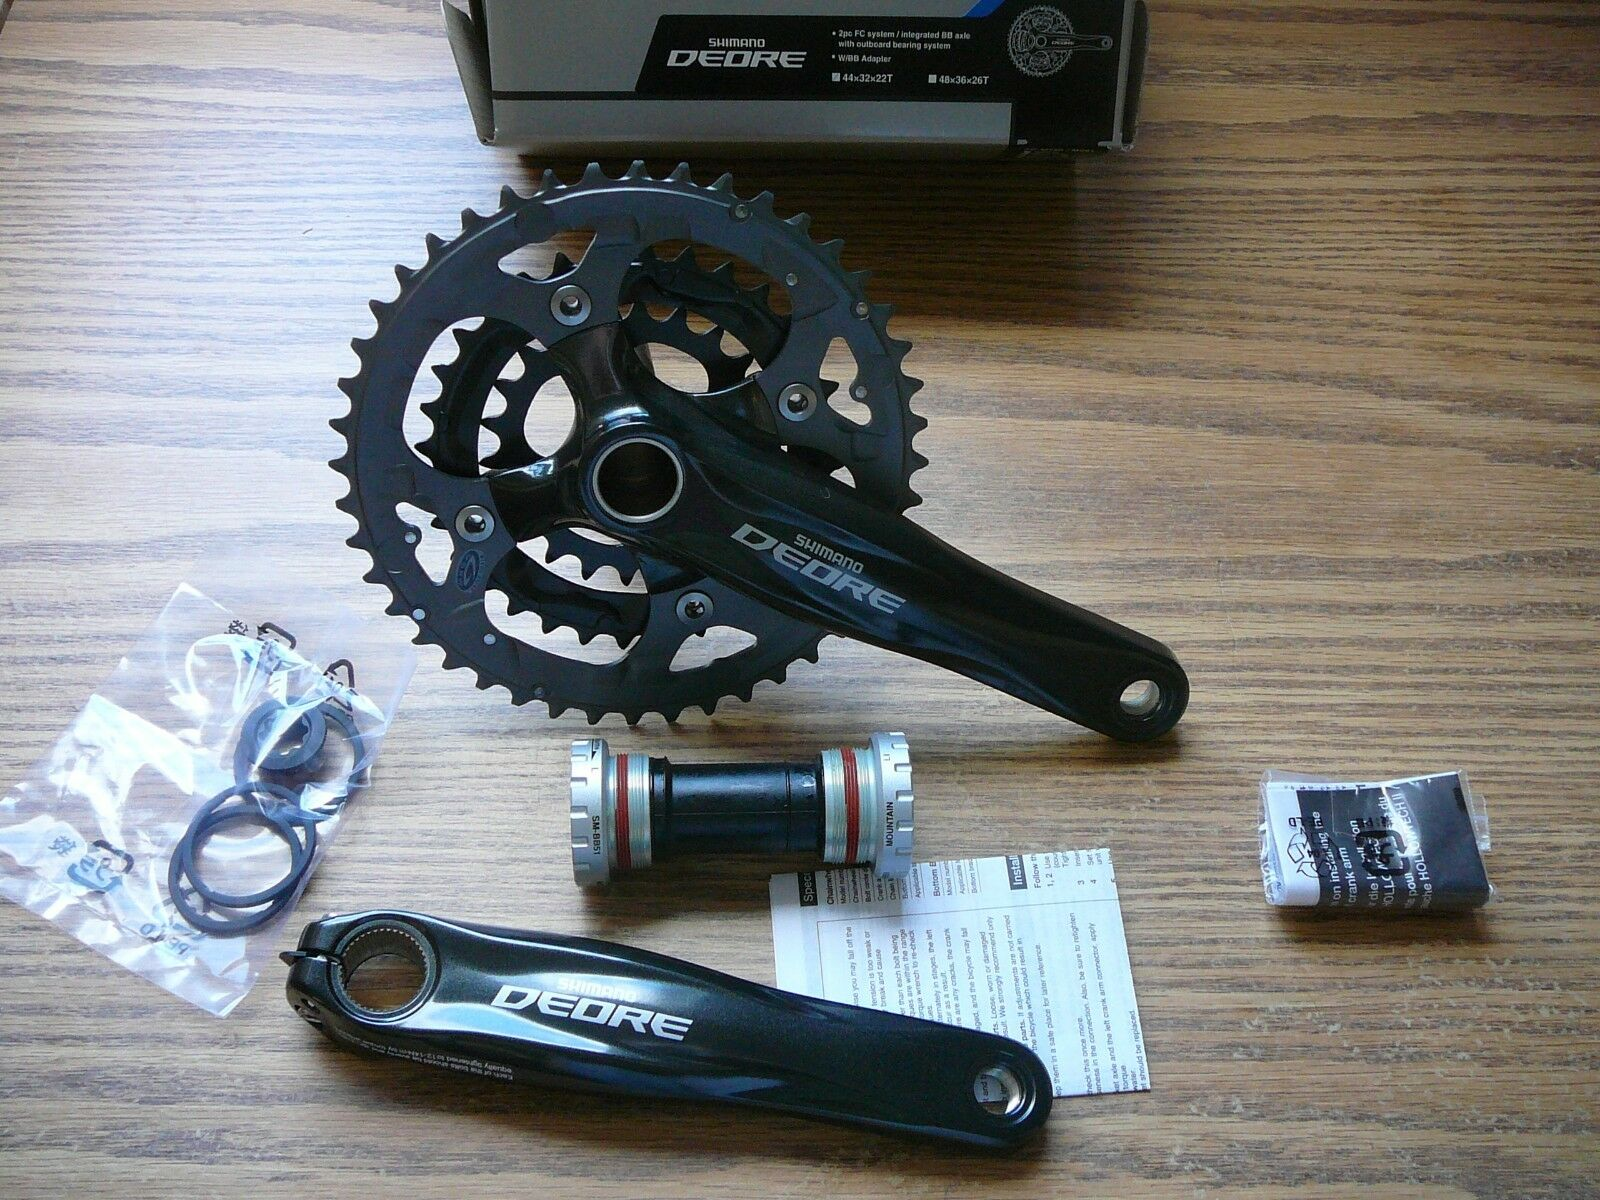 fea5a6dece2 Купить Shimano Deore FC-M590 Bike Crankset 9 spd 175mm на eBay.com ...